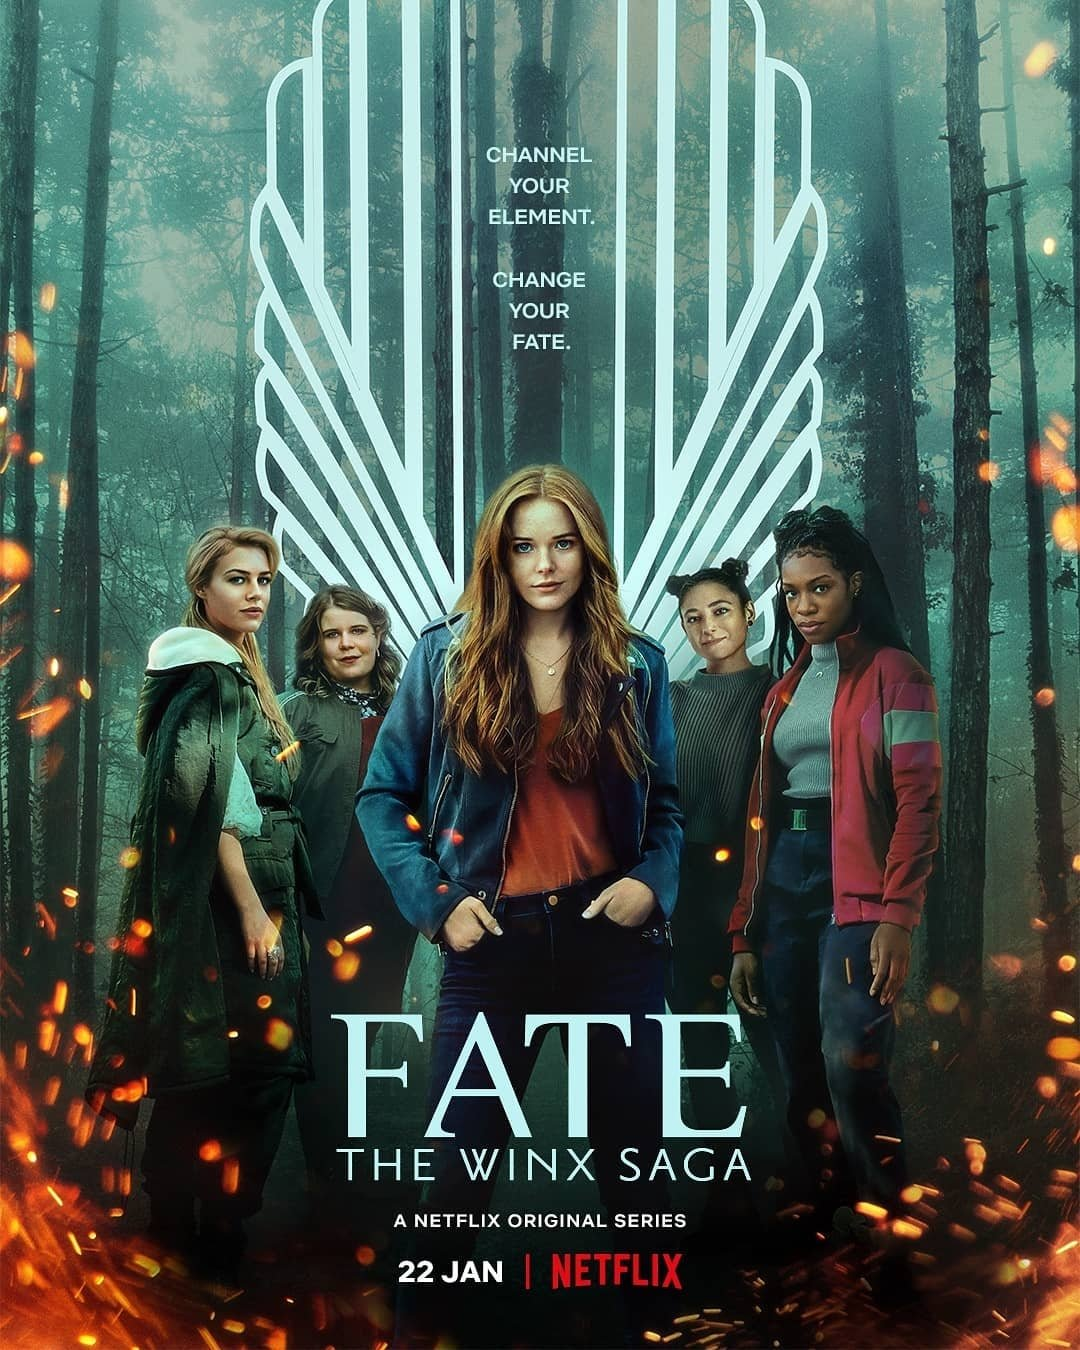 Fate The Winx Saga 2021 S01 Hindi Complete Netflix Web Series 720p HDRip 2020MB Download